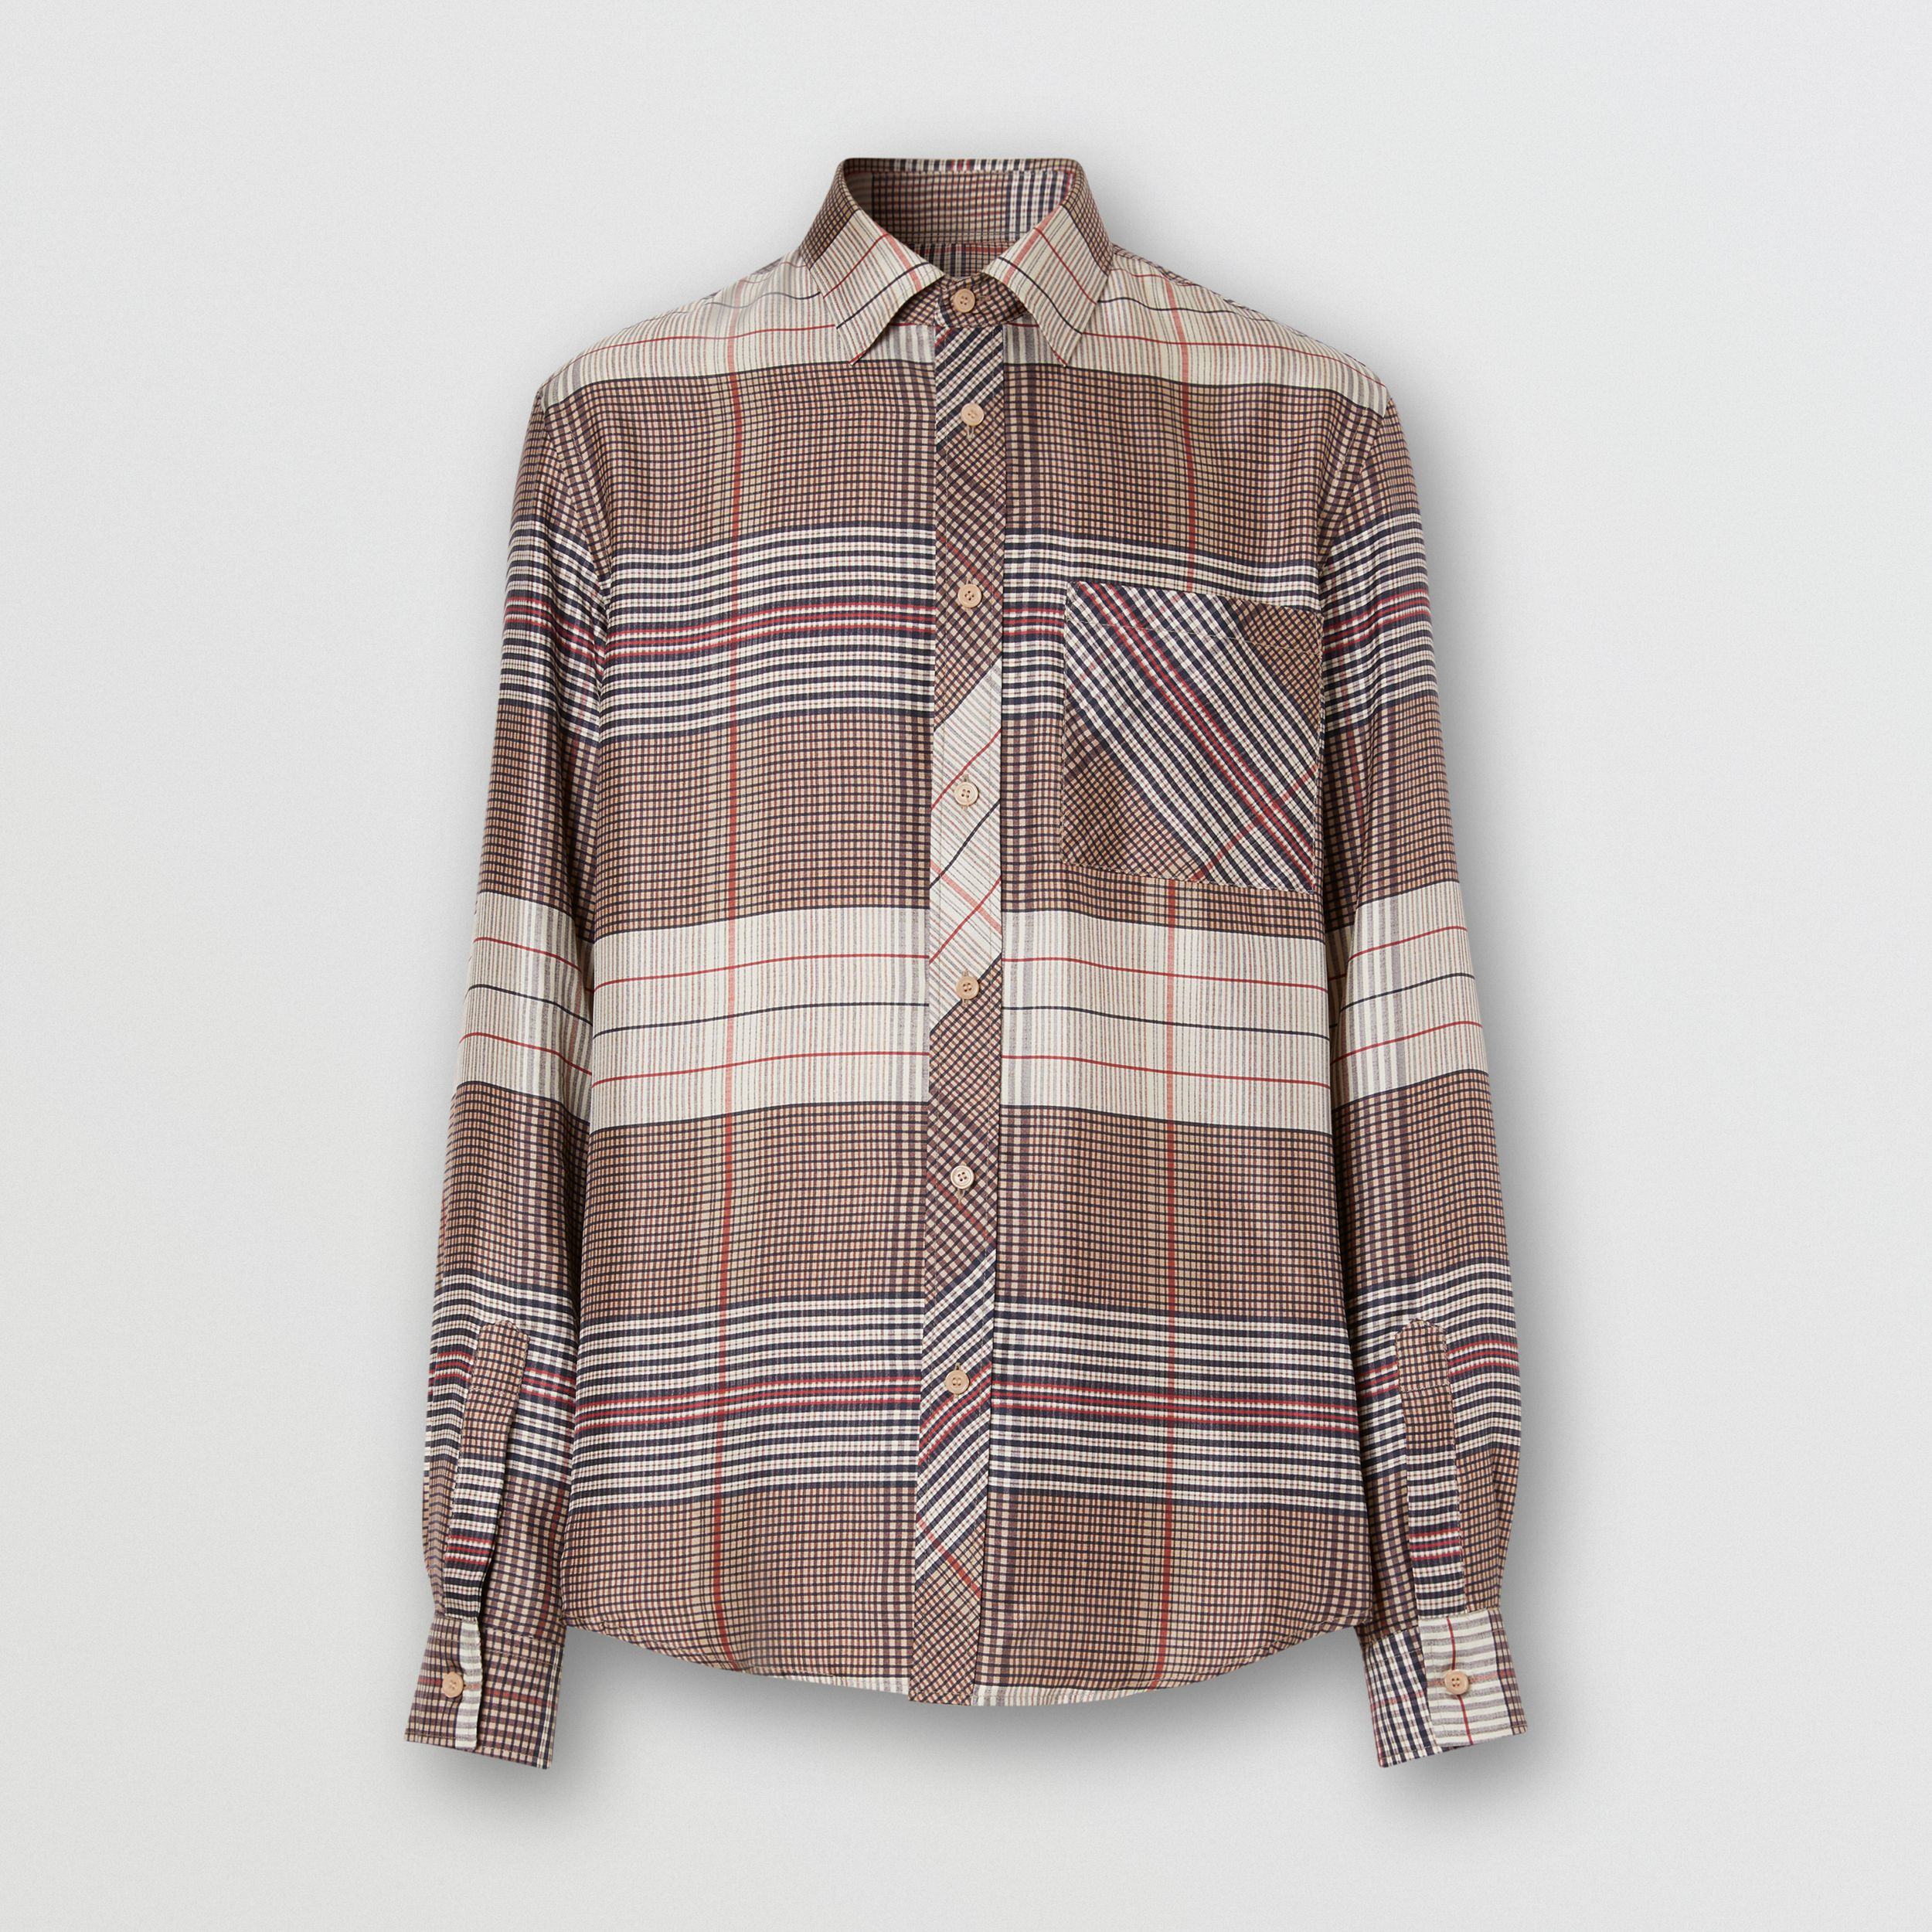 Classic Fit Contrast Check Silk Twill Shirt in Buttermilk | Burberry - 4